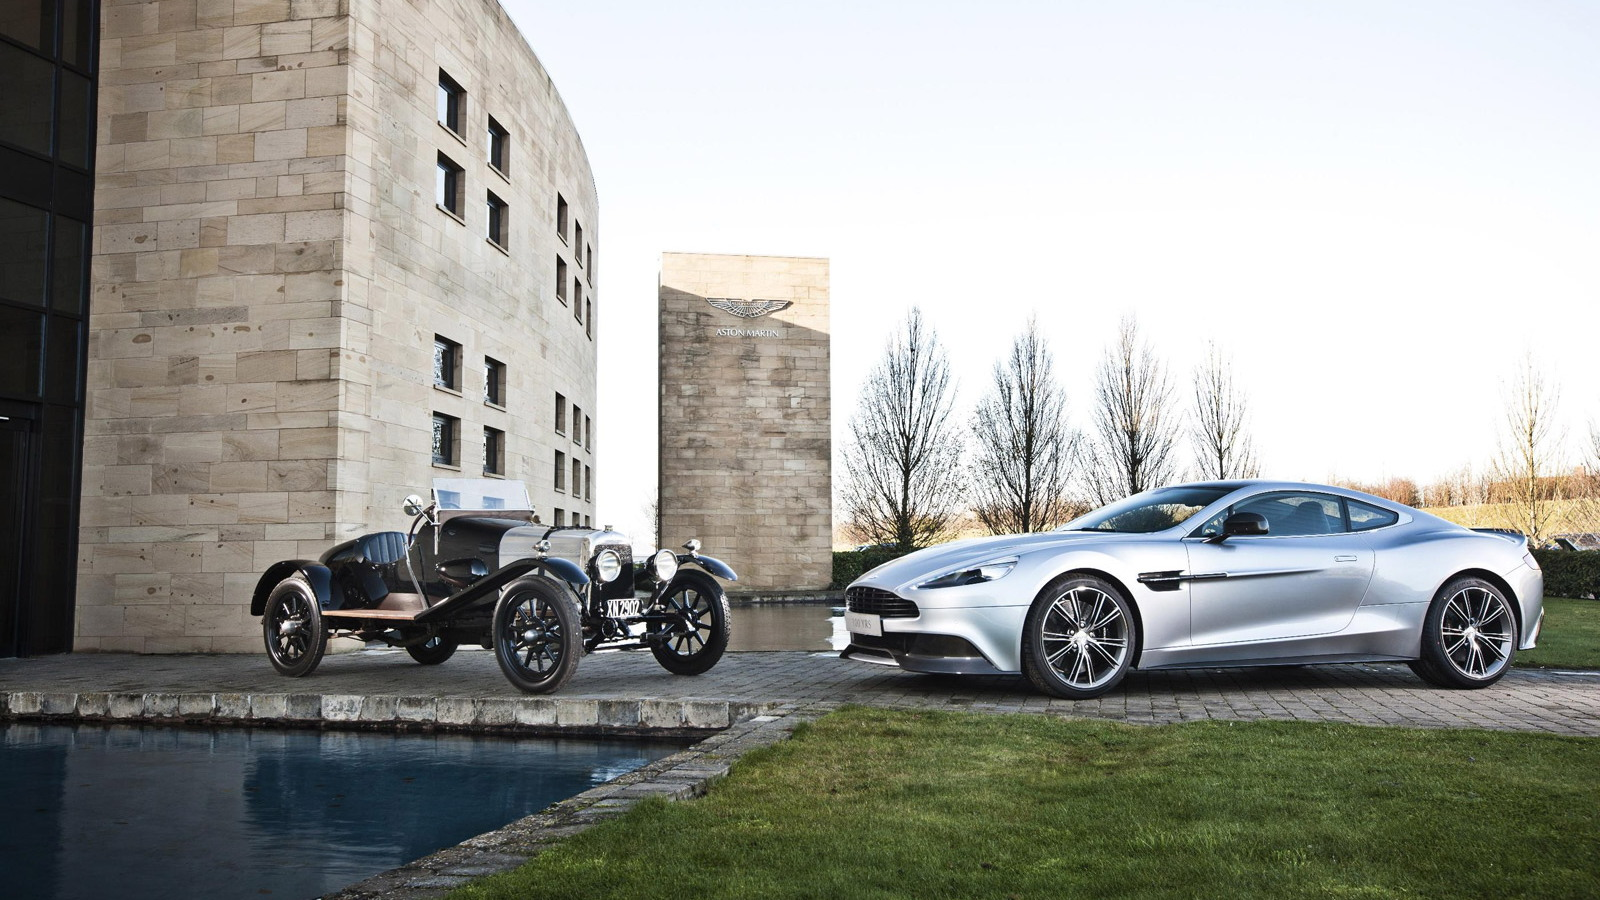 1921 Aston Martin A3 prototype and 2014 Aston Martin Vanquish